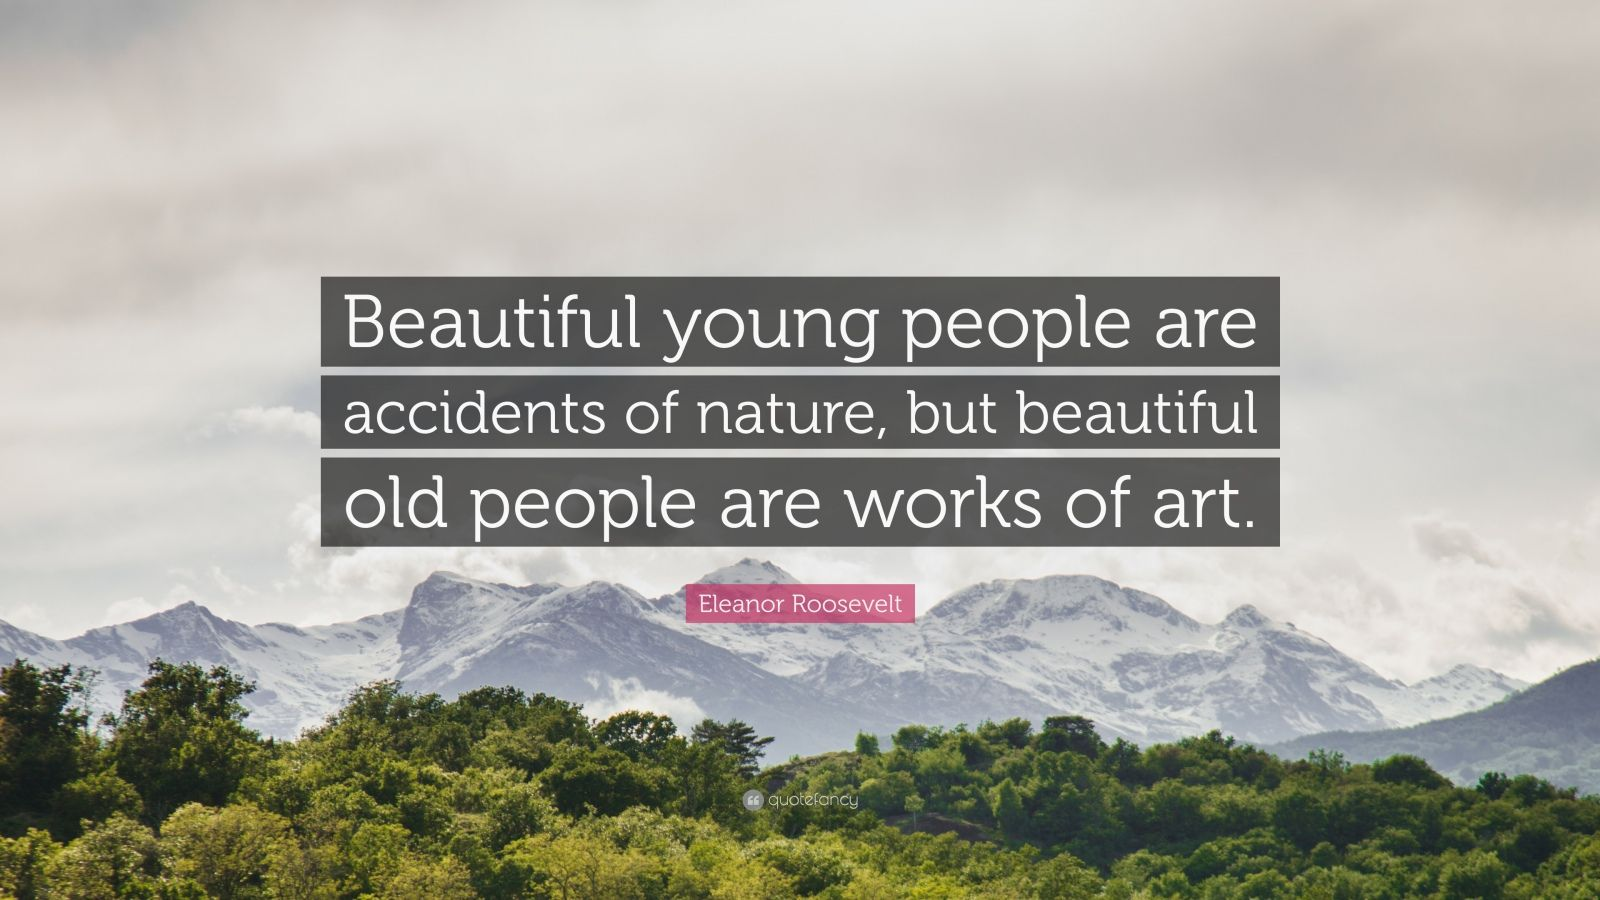 """Eleanor Roosevelt Quote: """"Beautiful young people are accidents of nature, but beautiful old people are works of art."""""""